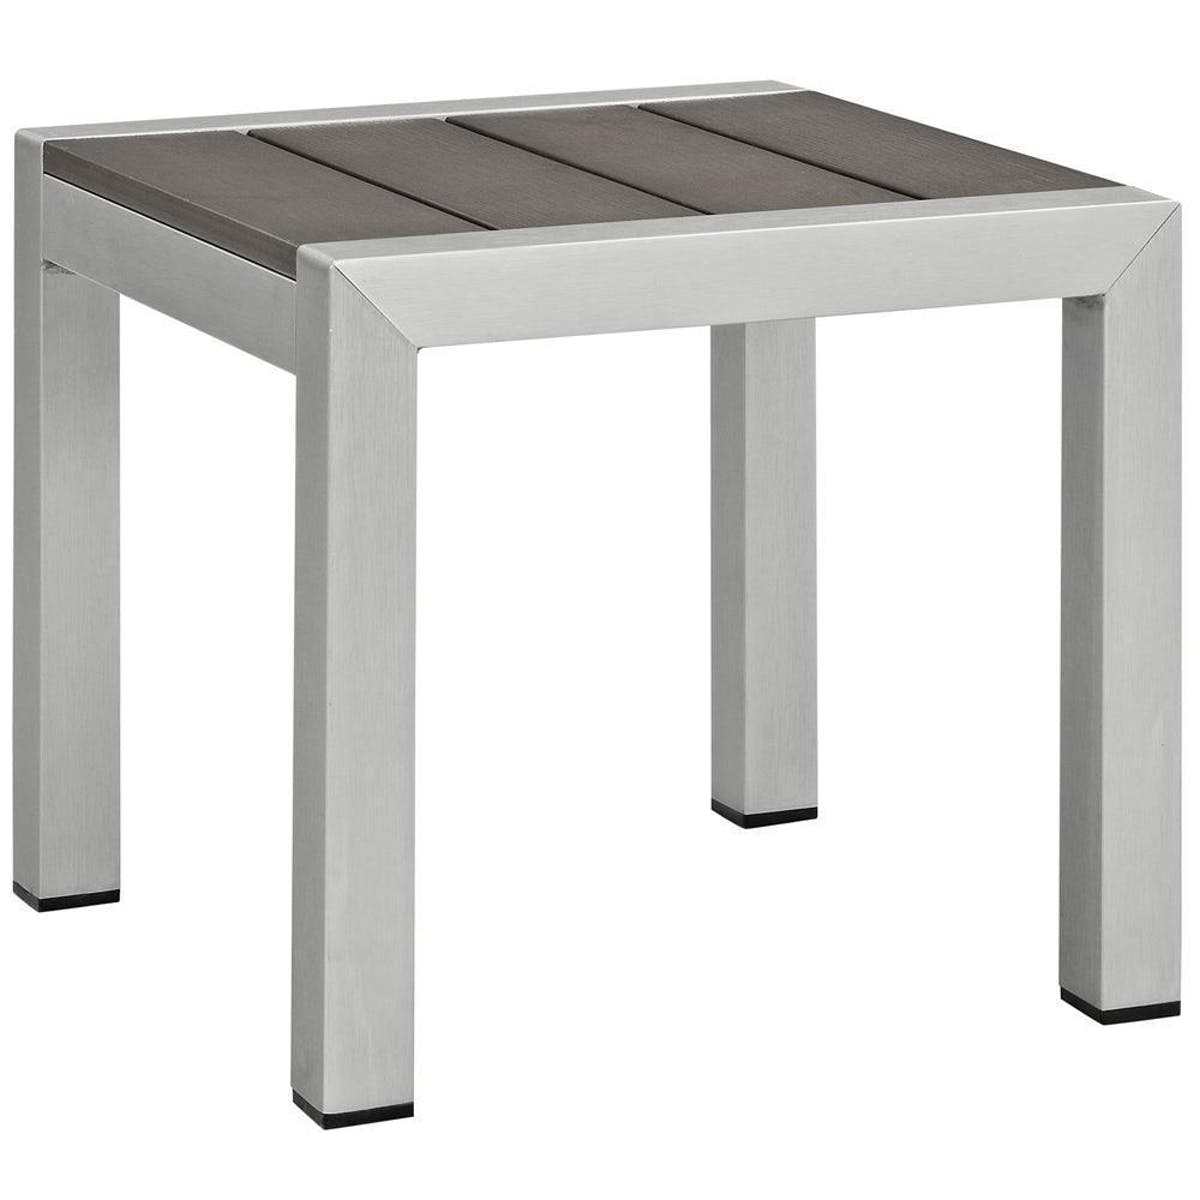 modway shore outdoor patio aluminum side table silver gray eei slv gry round accent white bar high end lamps for living room vintage metal legs clothes organiser wood glass top